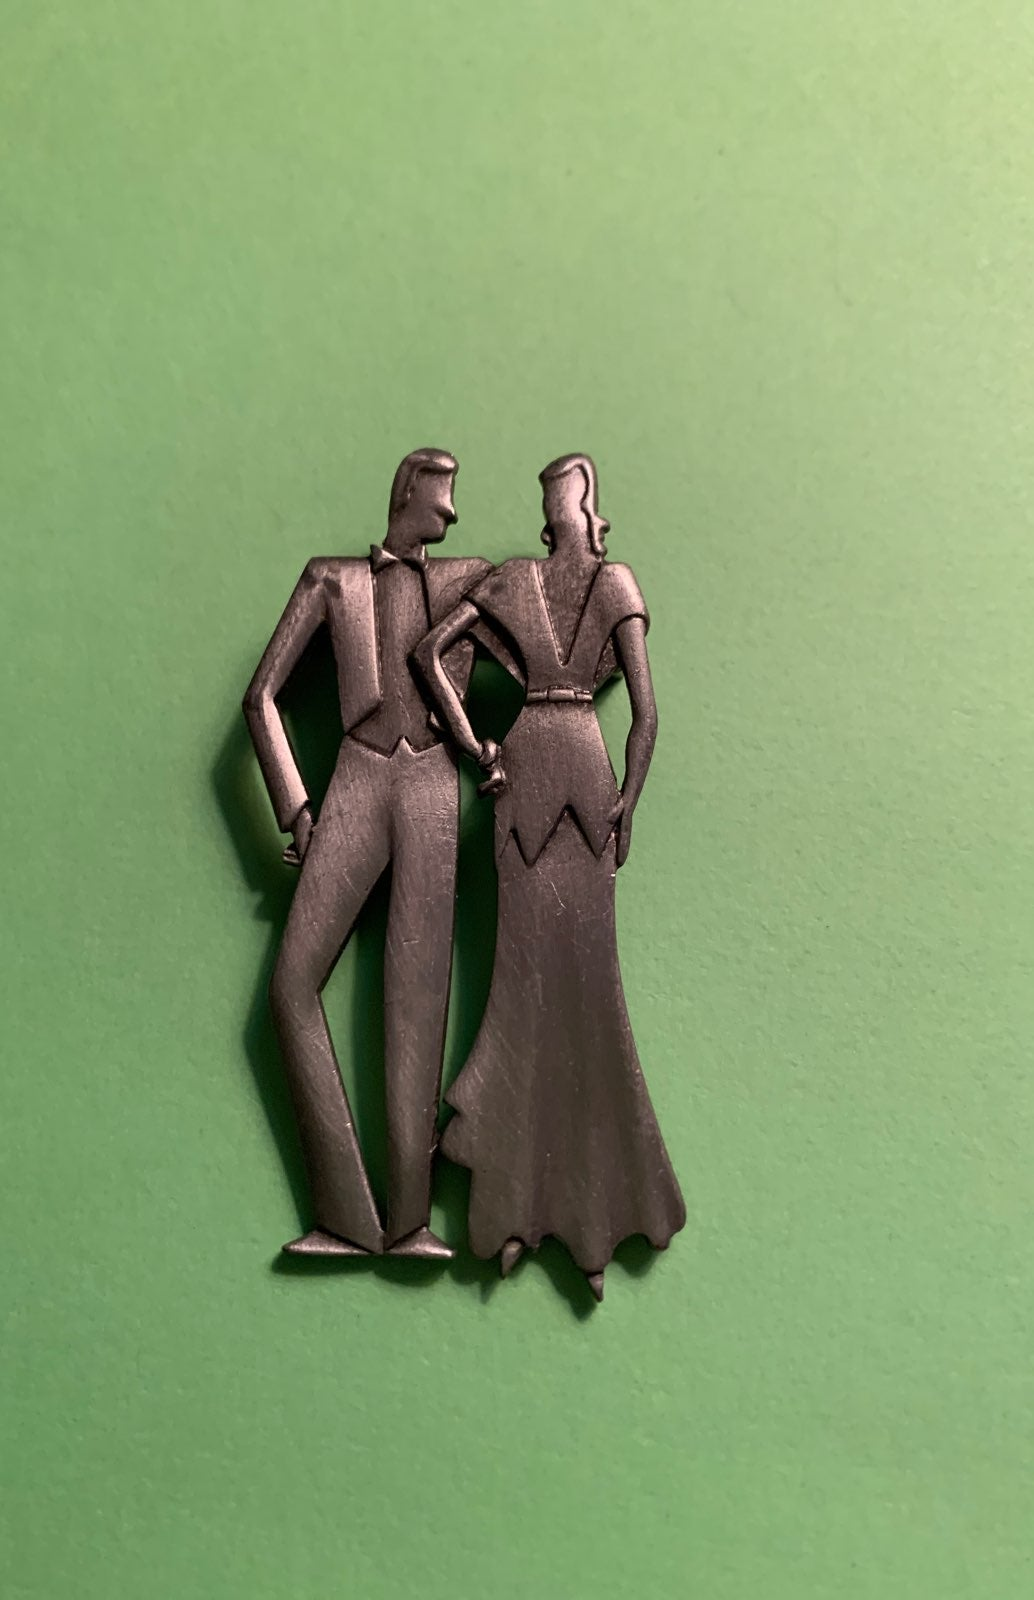 VTG PEWTER COUPLES PIN BROOCH LADY MAN